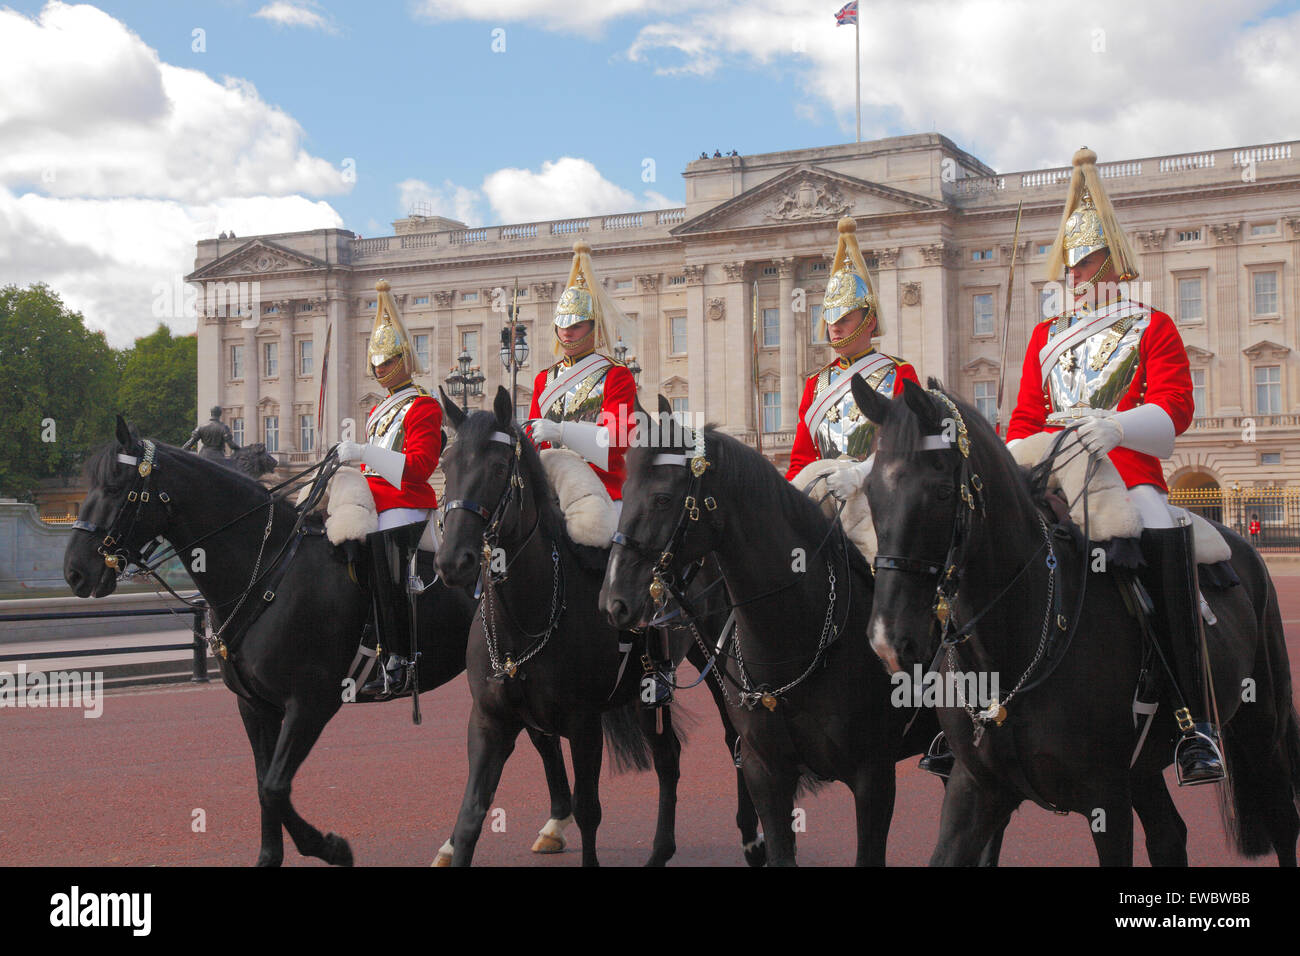 Mounted Royal Household Cavalry at Buckingham Palace in London - Stock Image